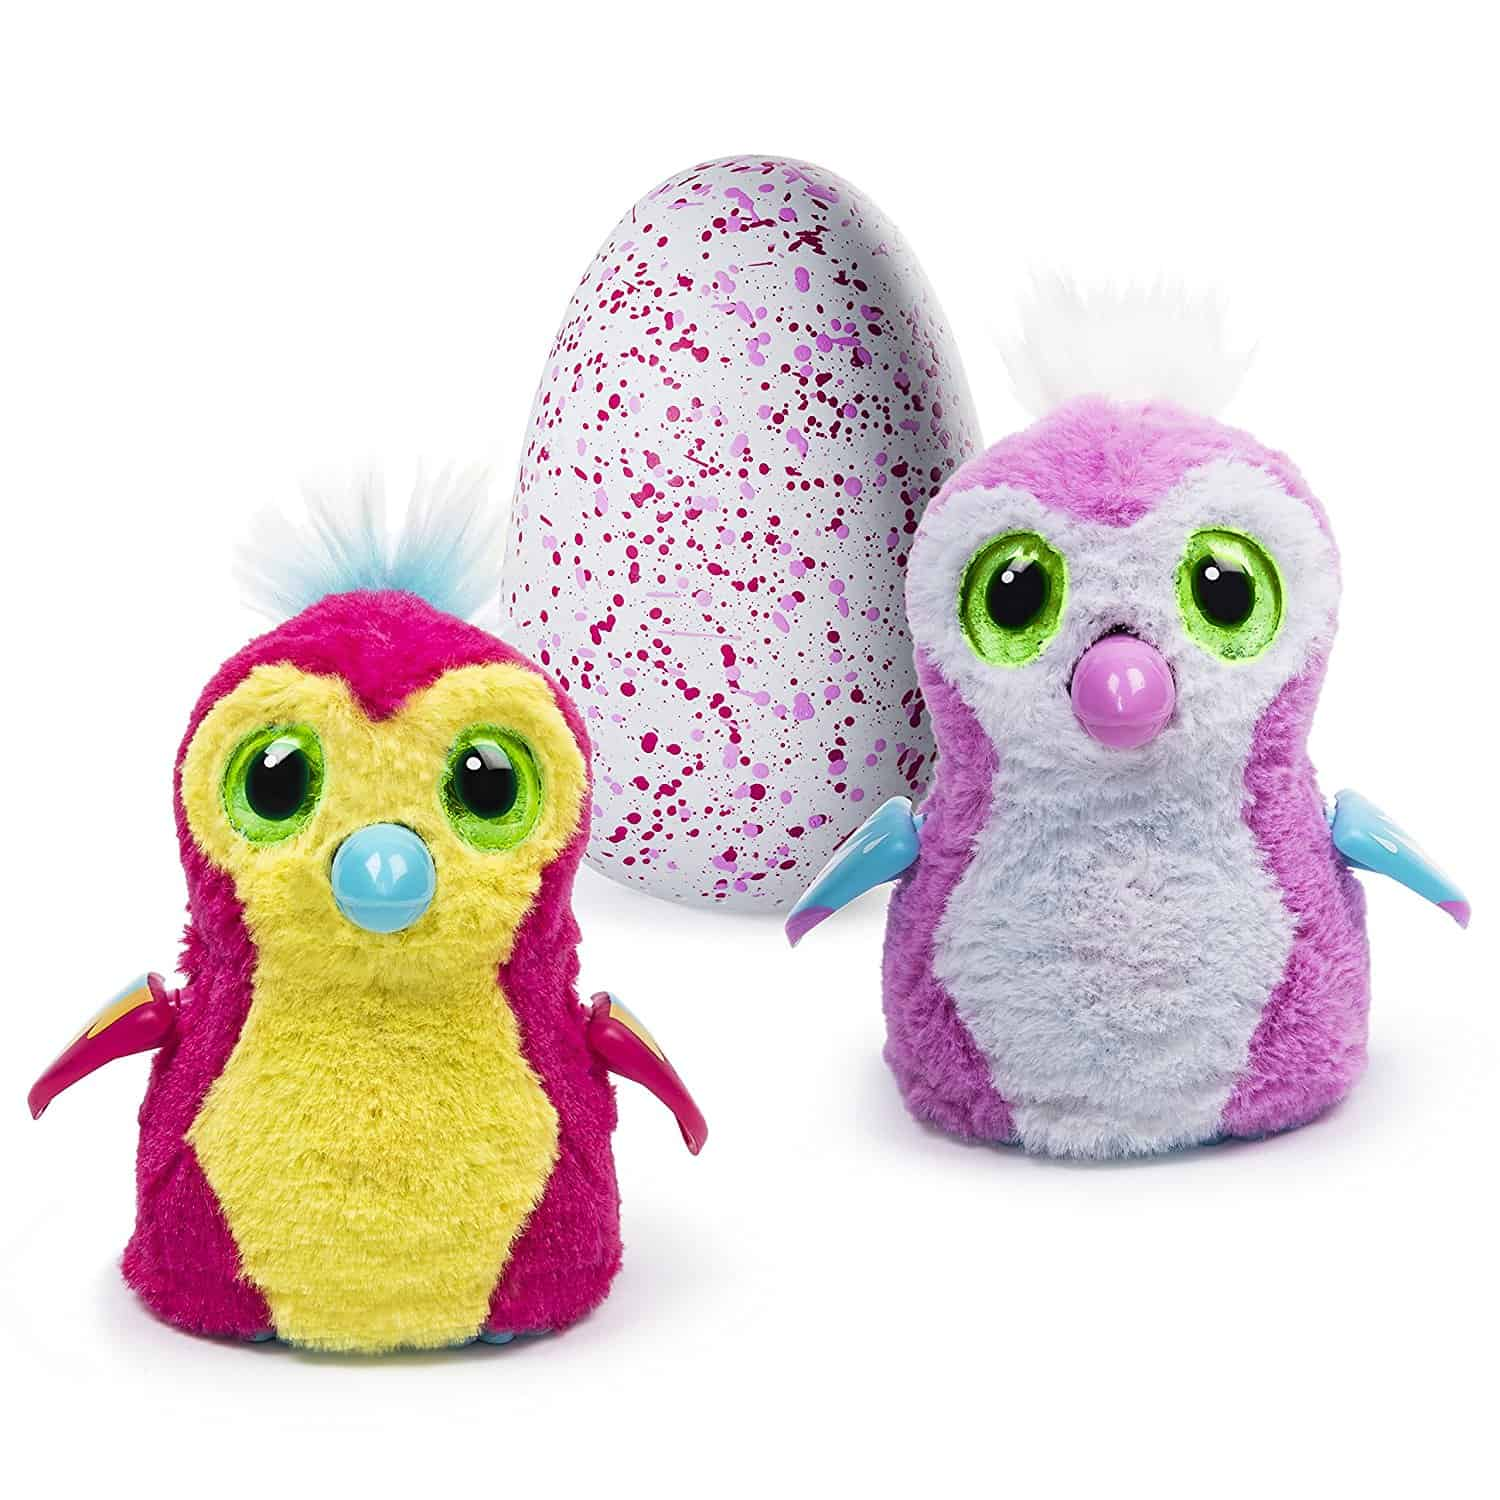 Hatchimals Hatching Egg on Sale at Amazon.ca